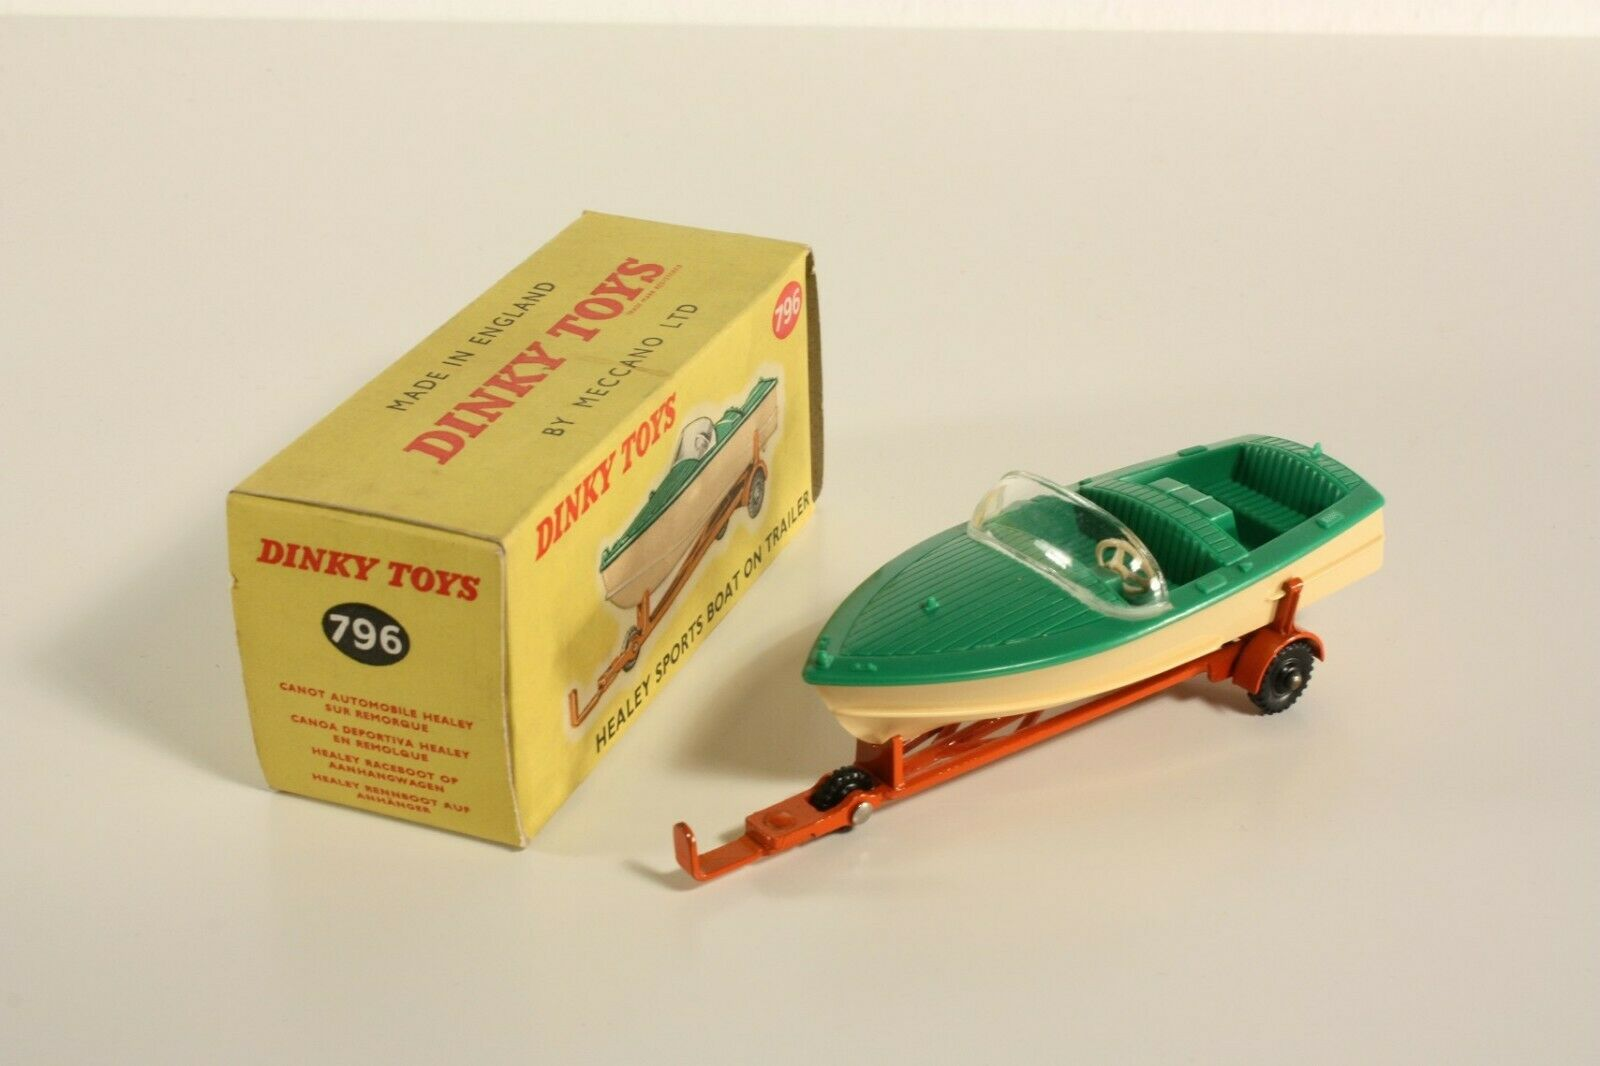 DINKY TOYS 796, HEALEY SPORTS BOAT ON caravane, Comme neuf in box  ab2202